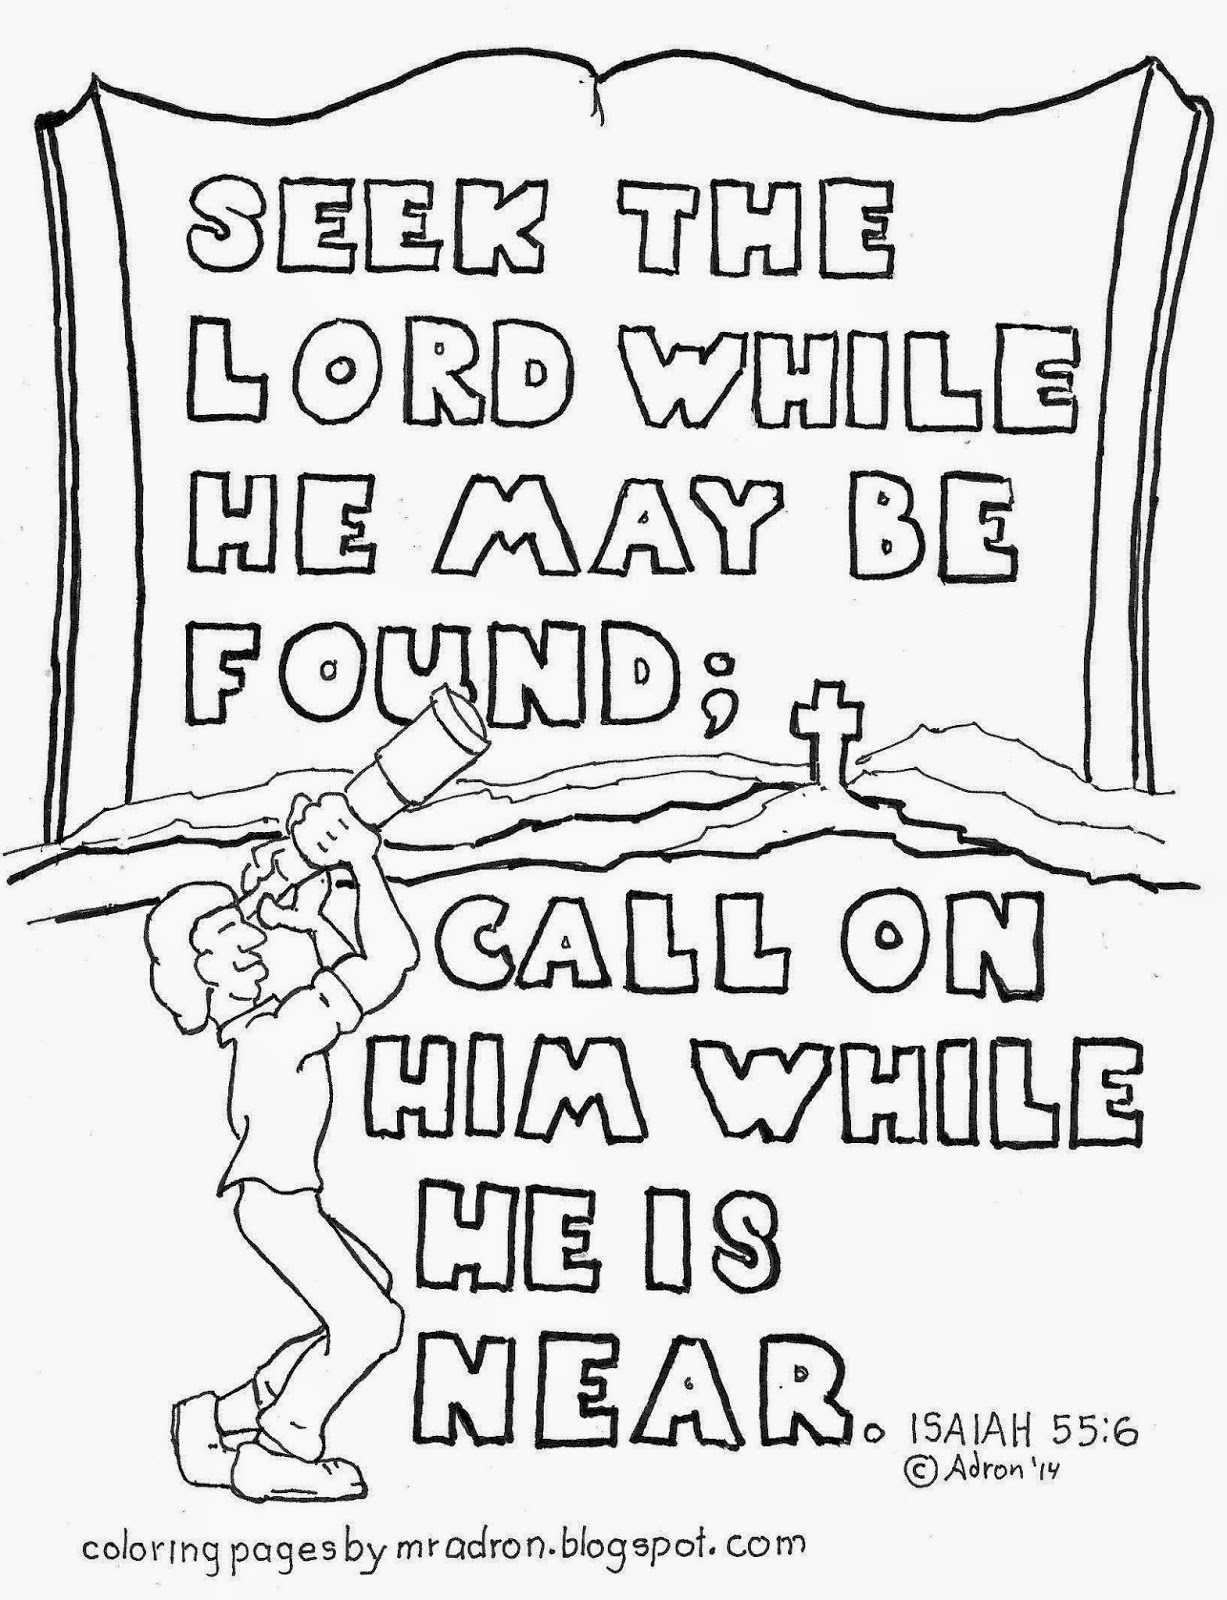 An illustration of Isaiah 55:6 to print and color.